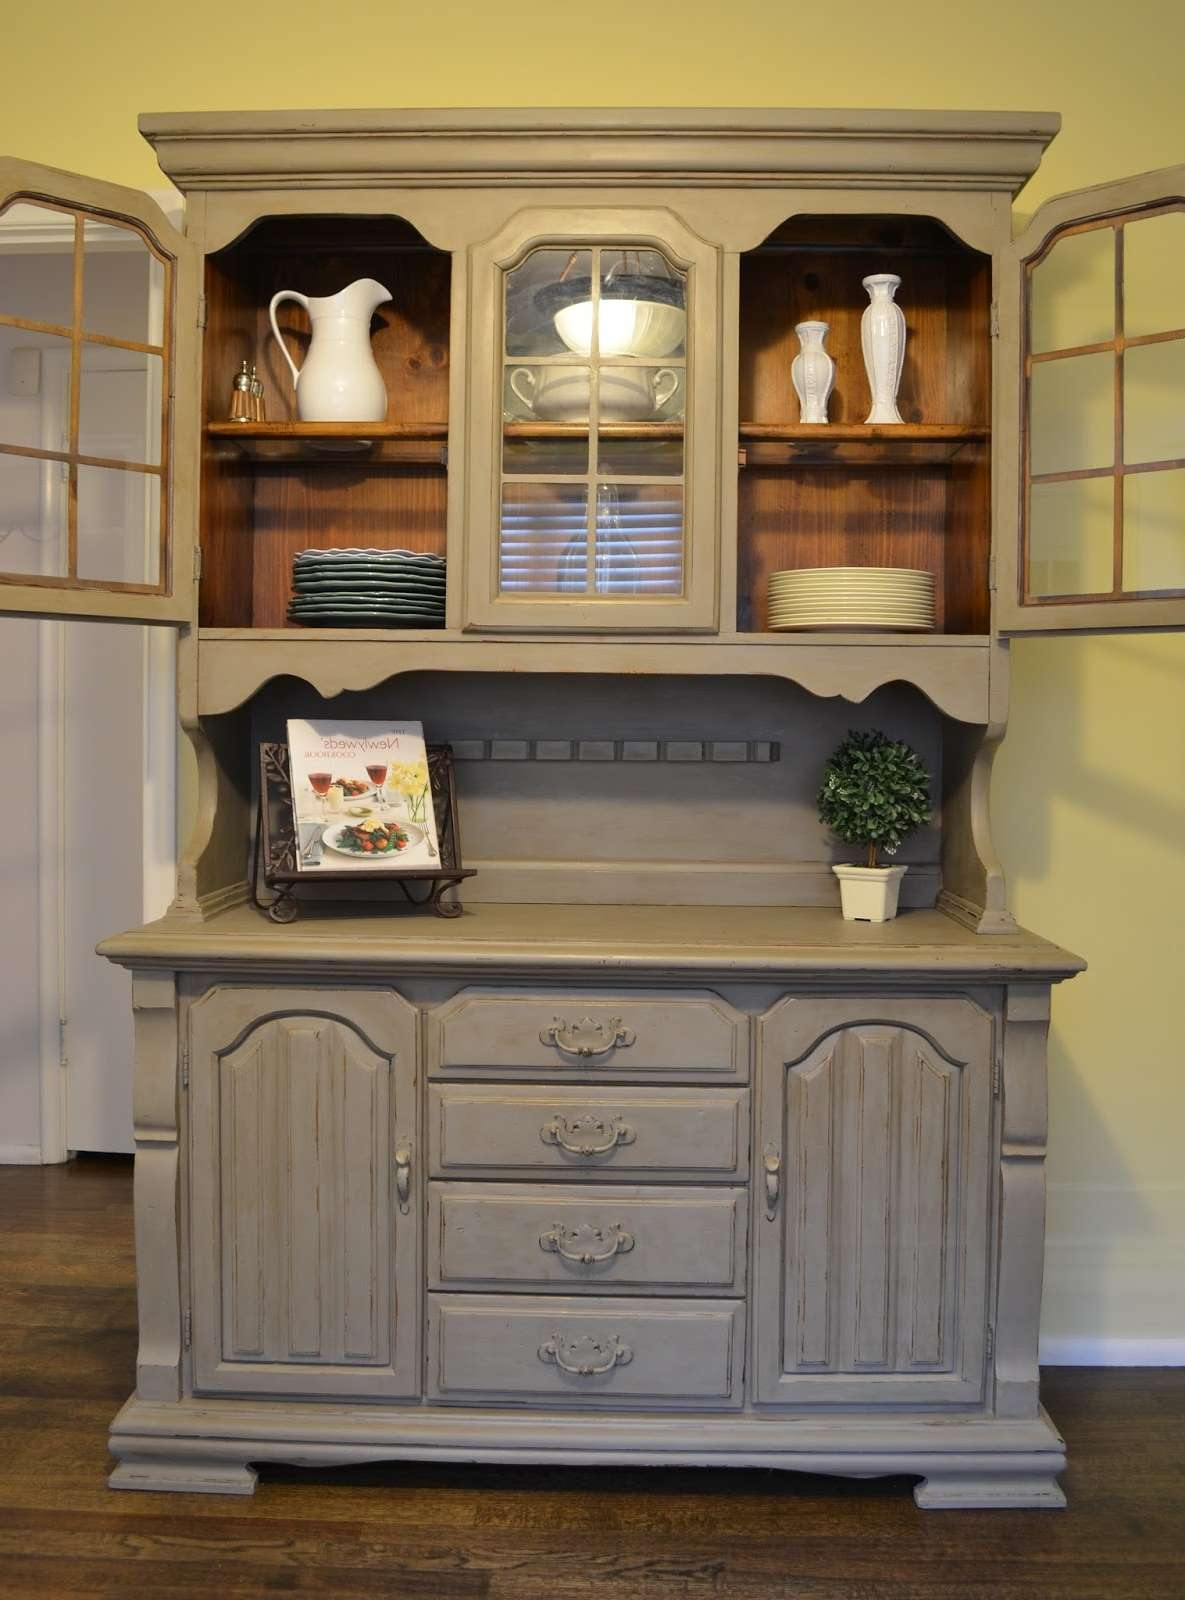 Kitchen Cabinet : Buffet Sideboard Furniture Cheap Furniture China With Cheap Sideboards Cabinets (View 7 of 20)